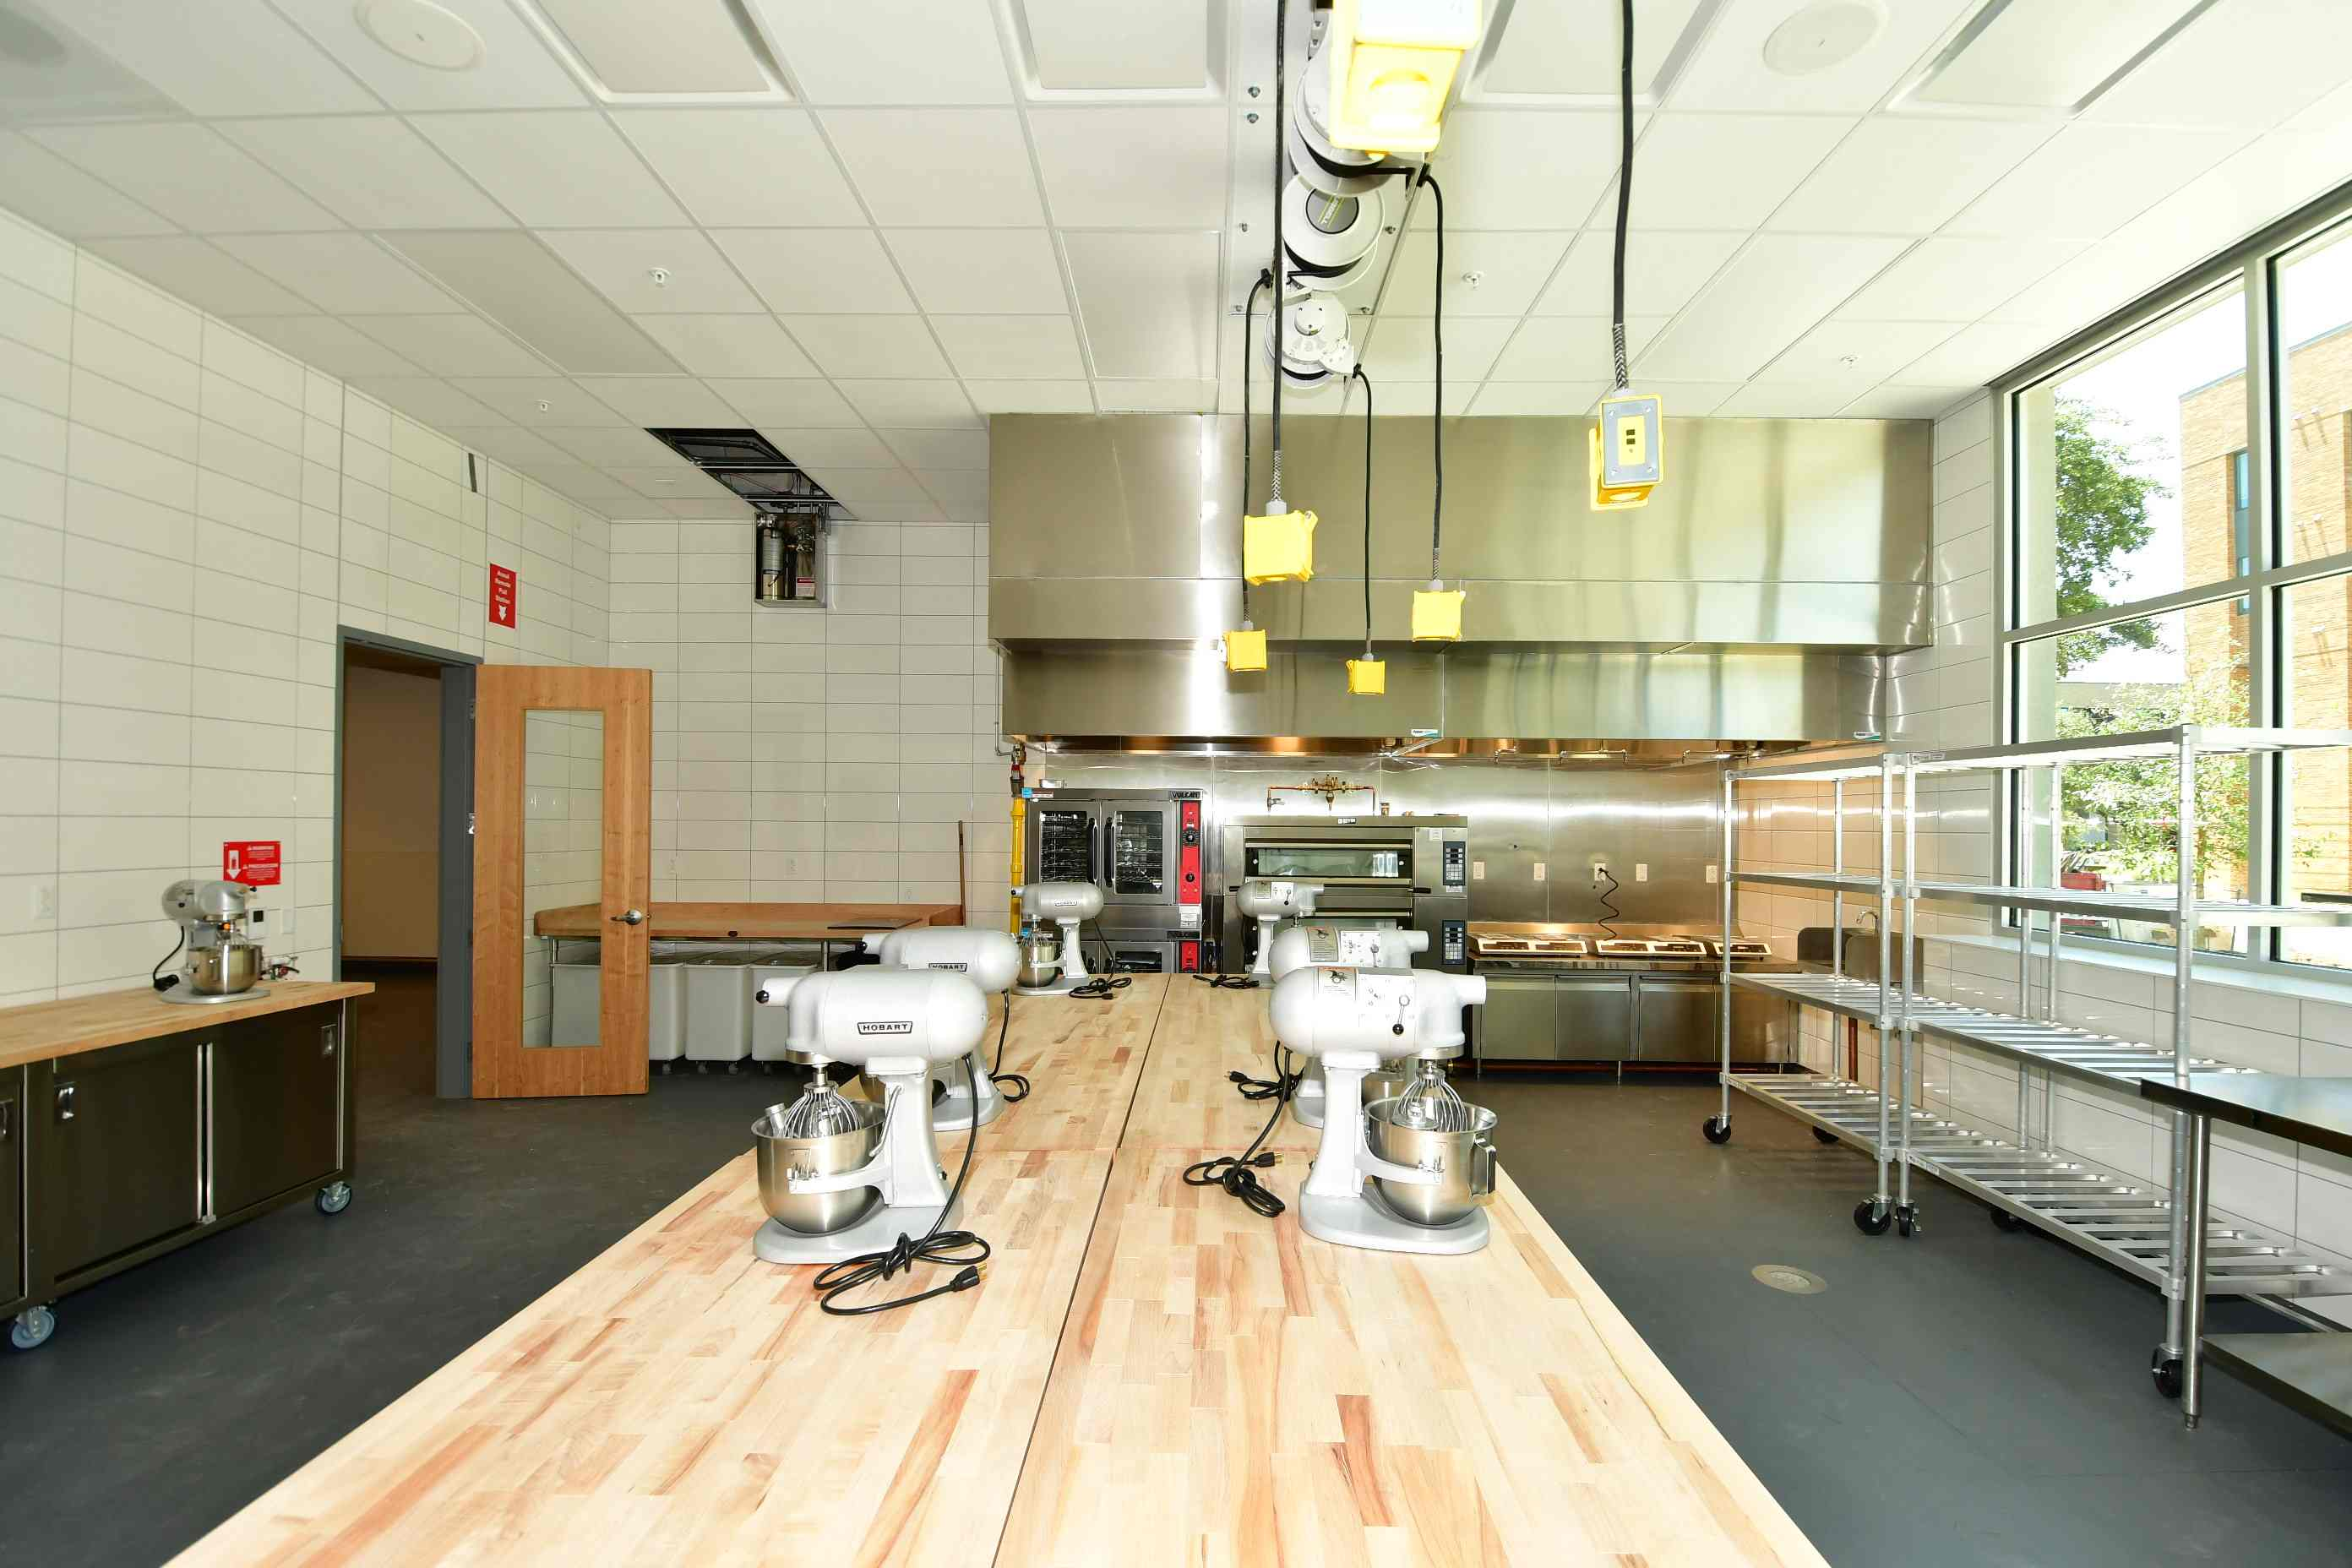 Highland Campus Phase 2 - Culinary pastry kitchen